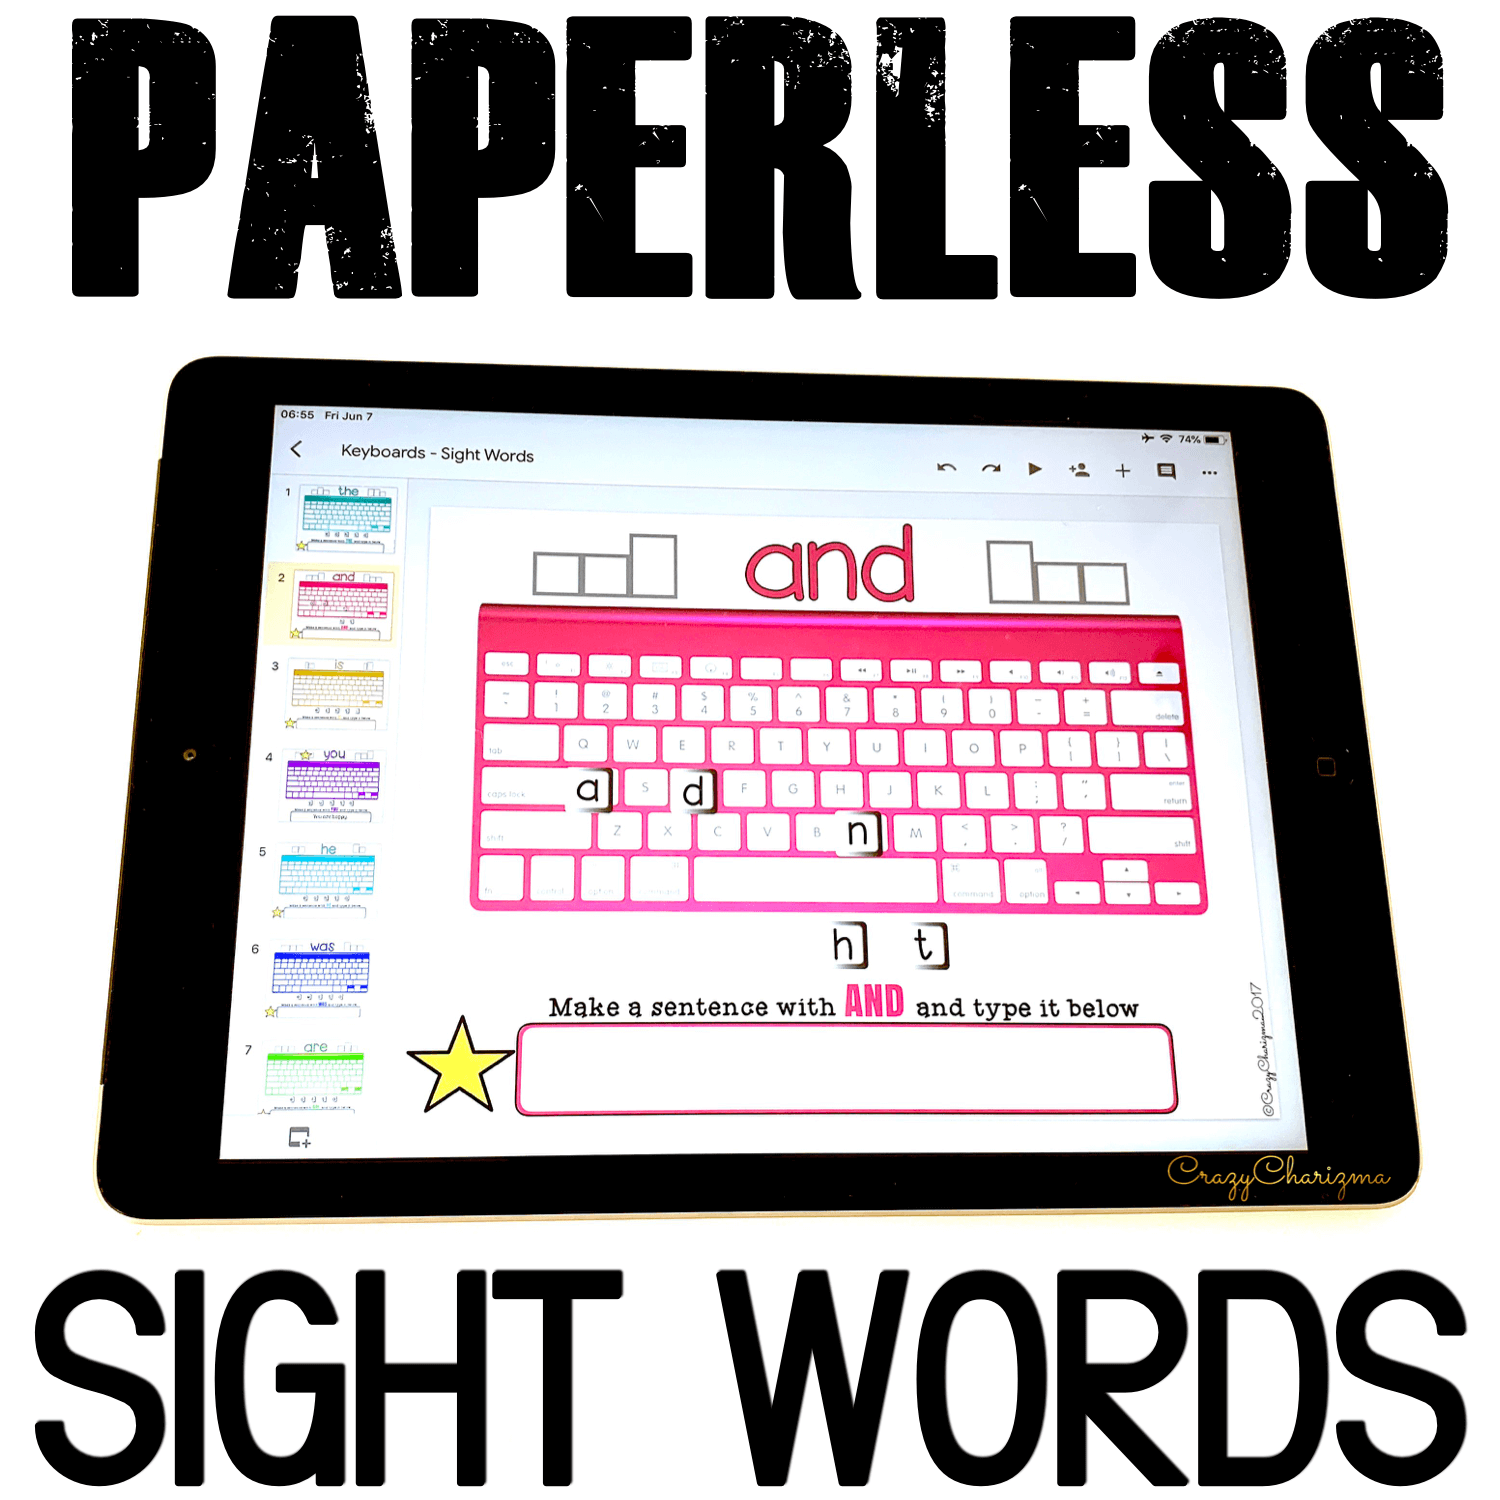 Google Classroom Activities for Kindergarten. Sight Words Games. Grab paperless resources to practice sight words in a fun way. Let kids get engaged with word work and play with high-frequency words. They will love typing words, learn the keyboard, and build sentences. #CrazyCharizma #GoogleClassroom #GoogleClassroomKindergarten #HandsOnActivitiesForKids #PaperlessClassroomElementary #SightWordsActivities